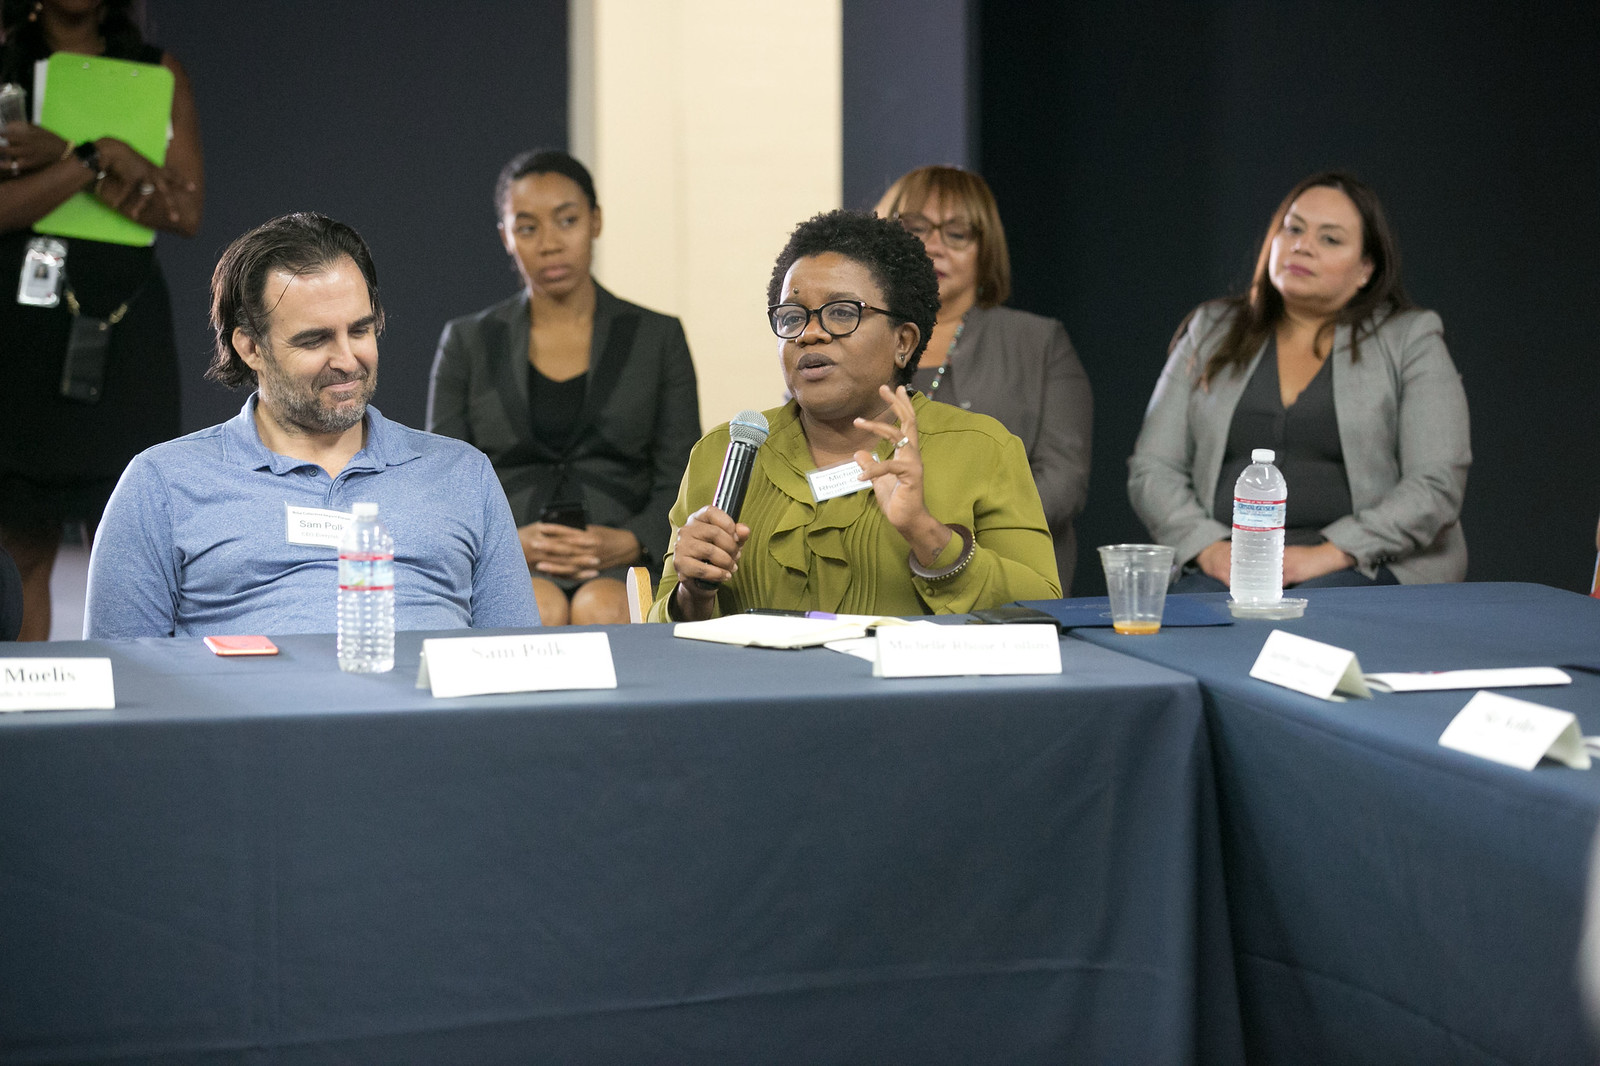 Los Angeles community members participate in an Opportunity Zone revitalization event